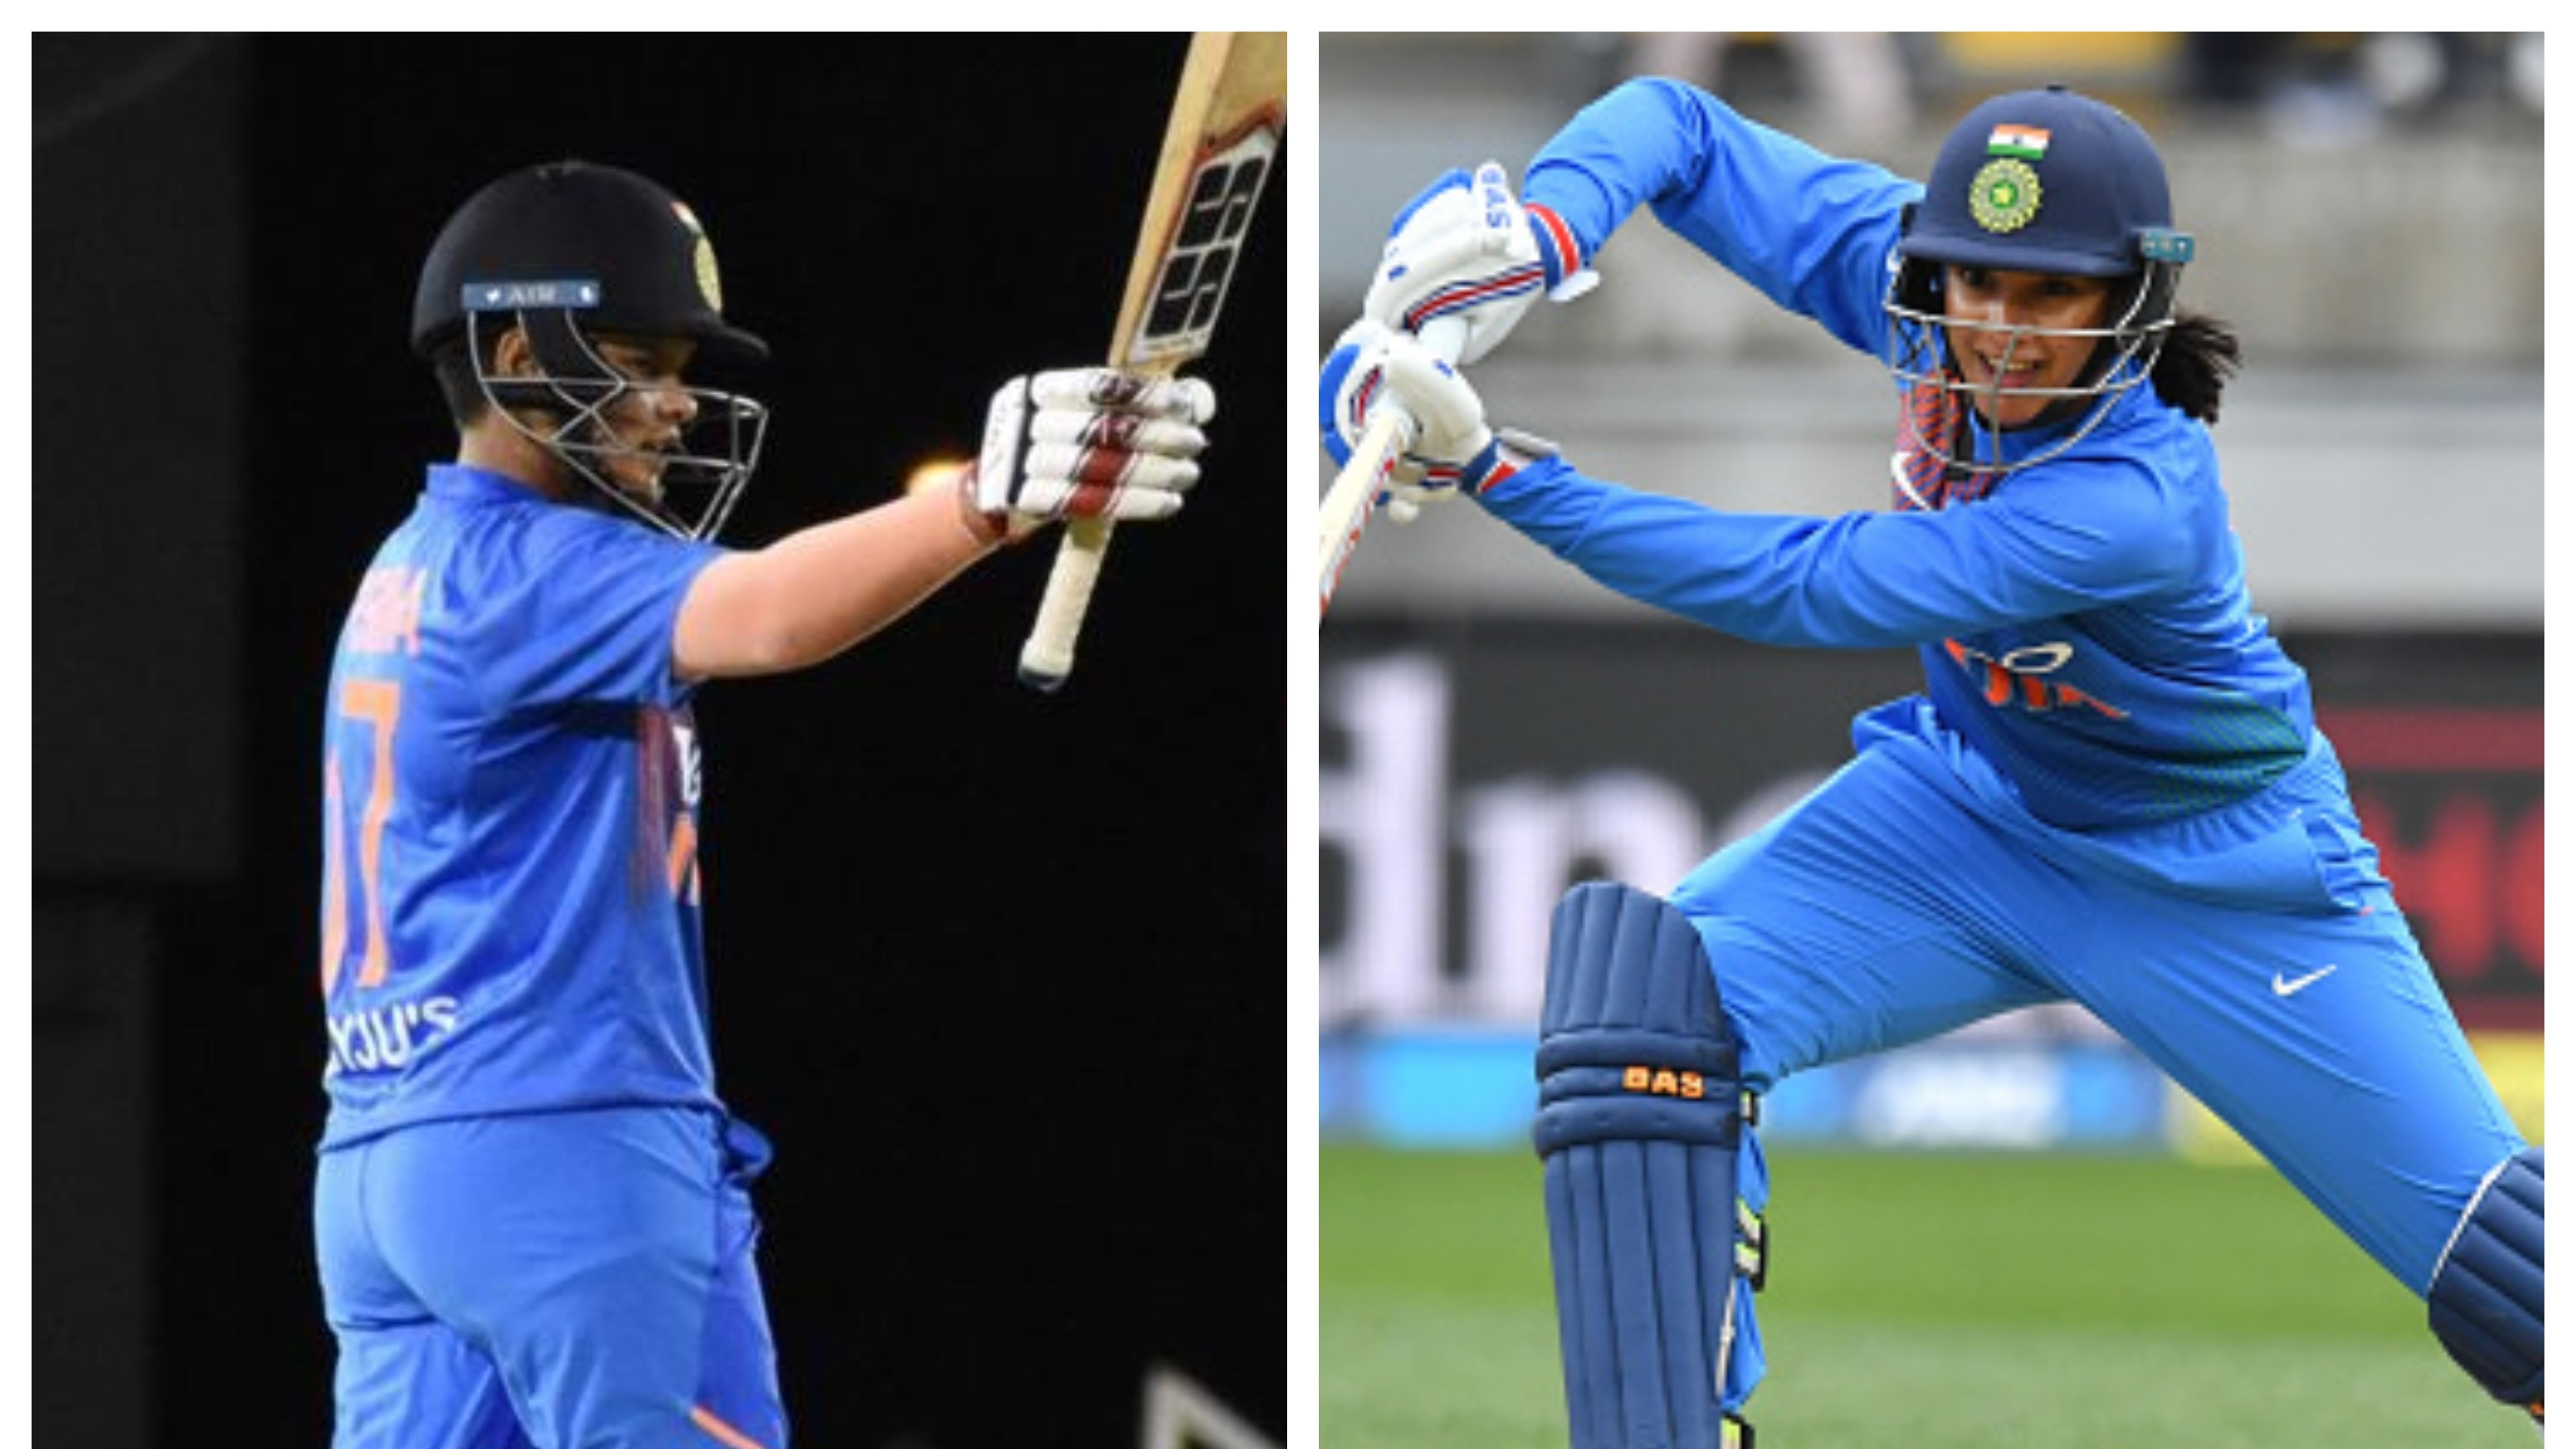 WIw v INDw 2019: Mandhana, Shafali dominate as India topples off West Indies in first T20I